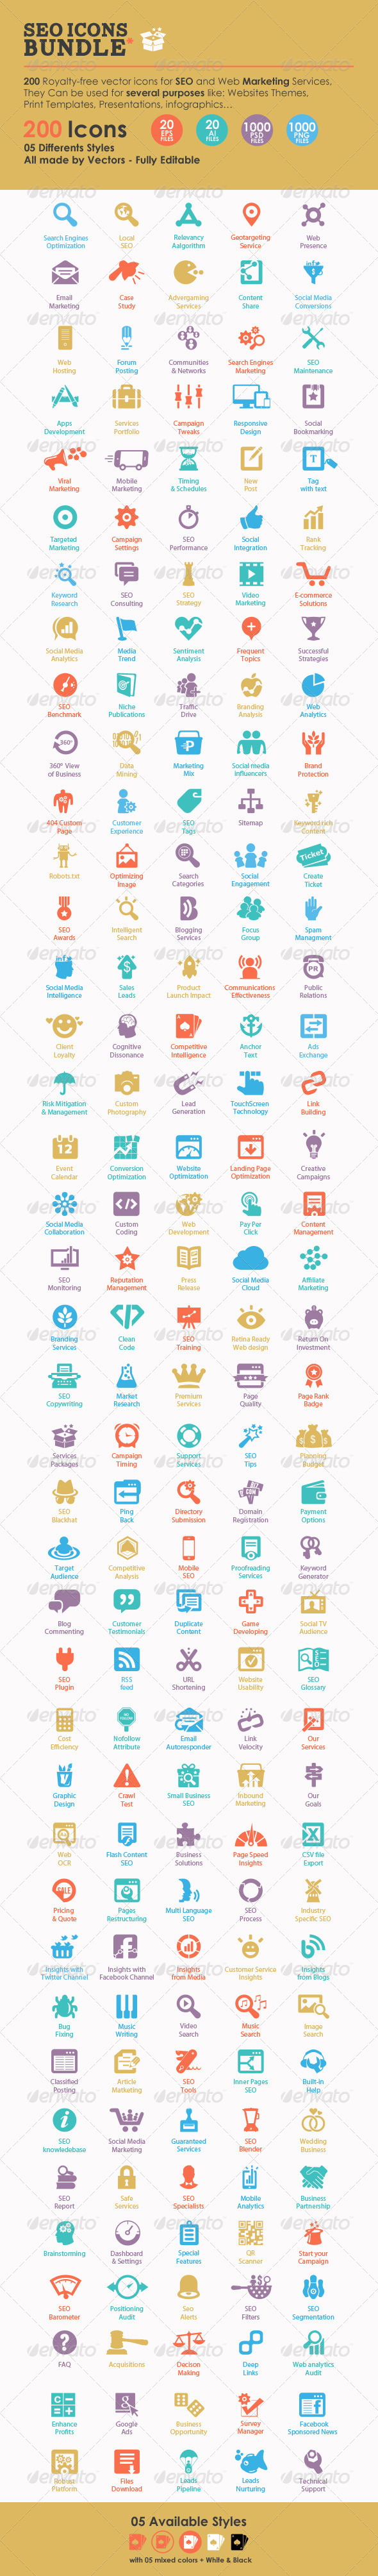 GraphicRiver SEO Icons Bundle 6779683